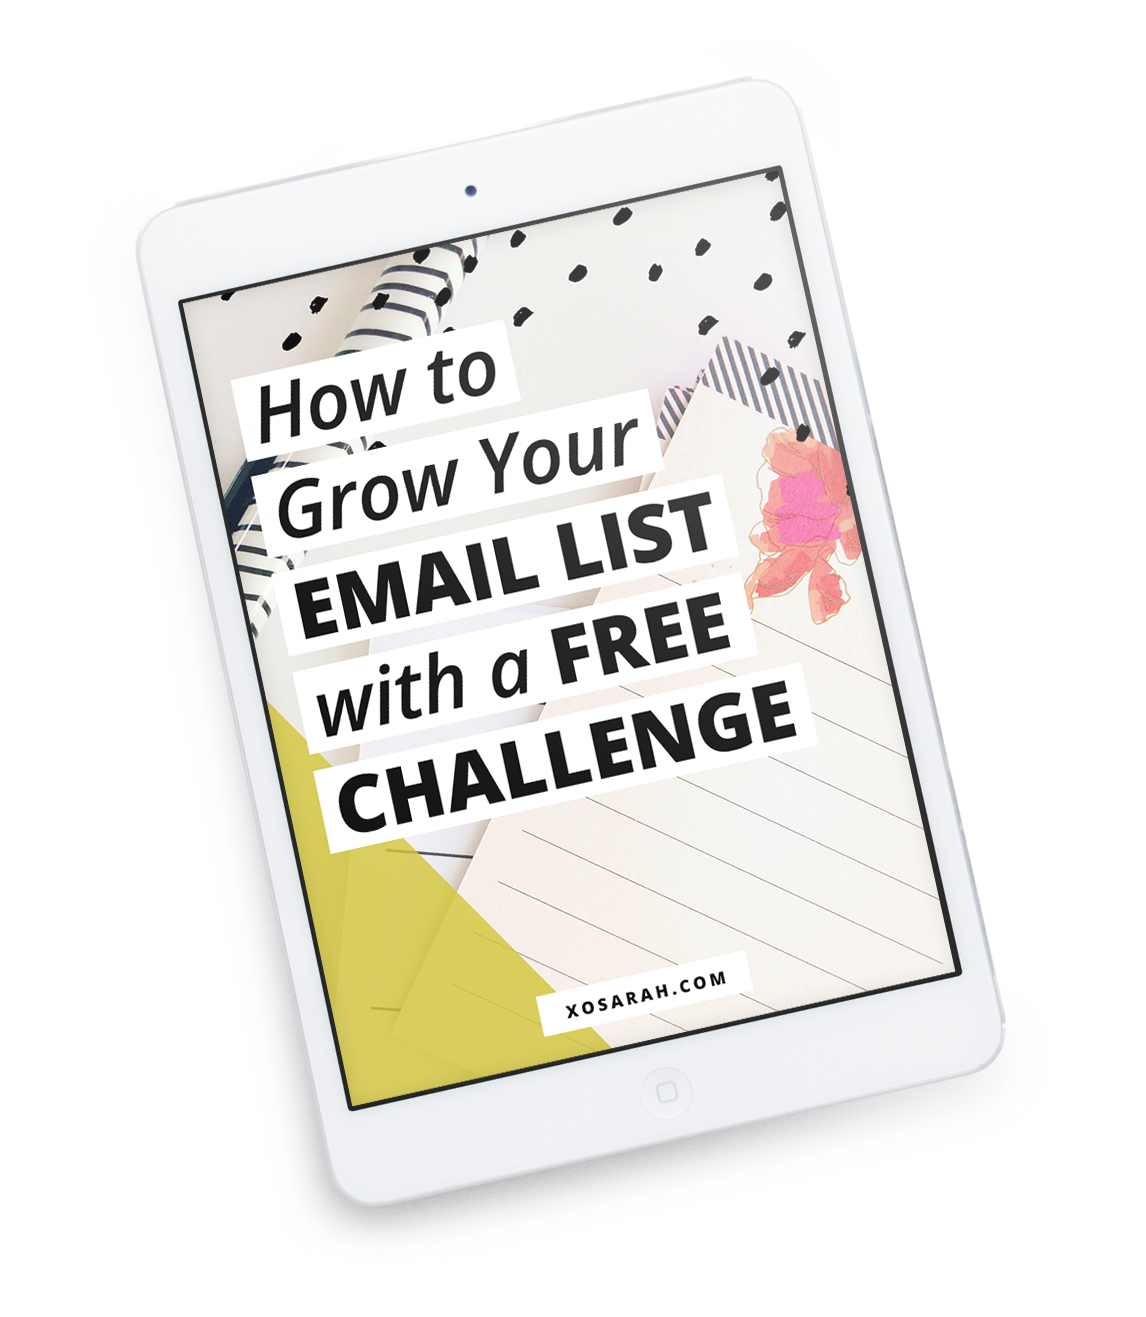 Blast off your email list in just ONE WEEK by hosting a free challenge. Grab my new ebook to learn how!